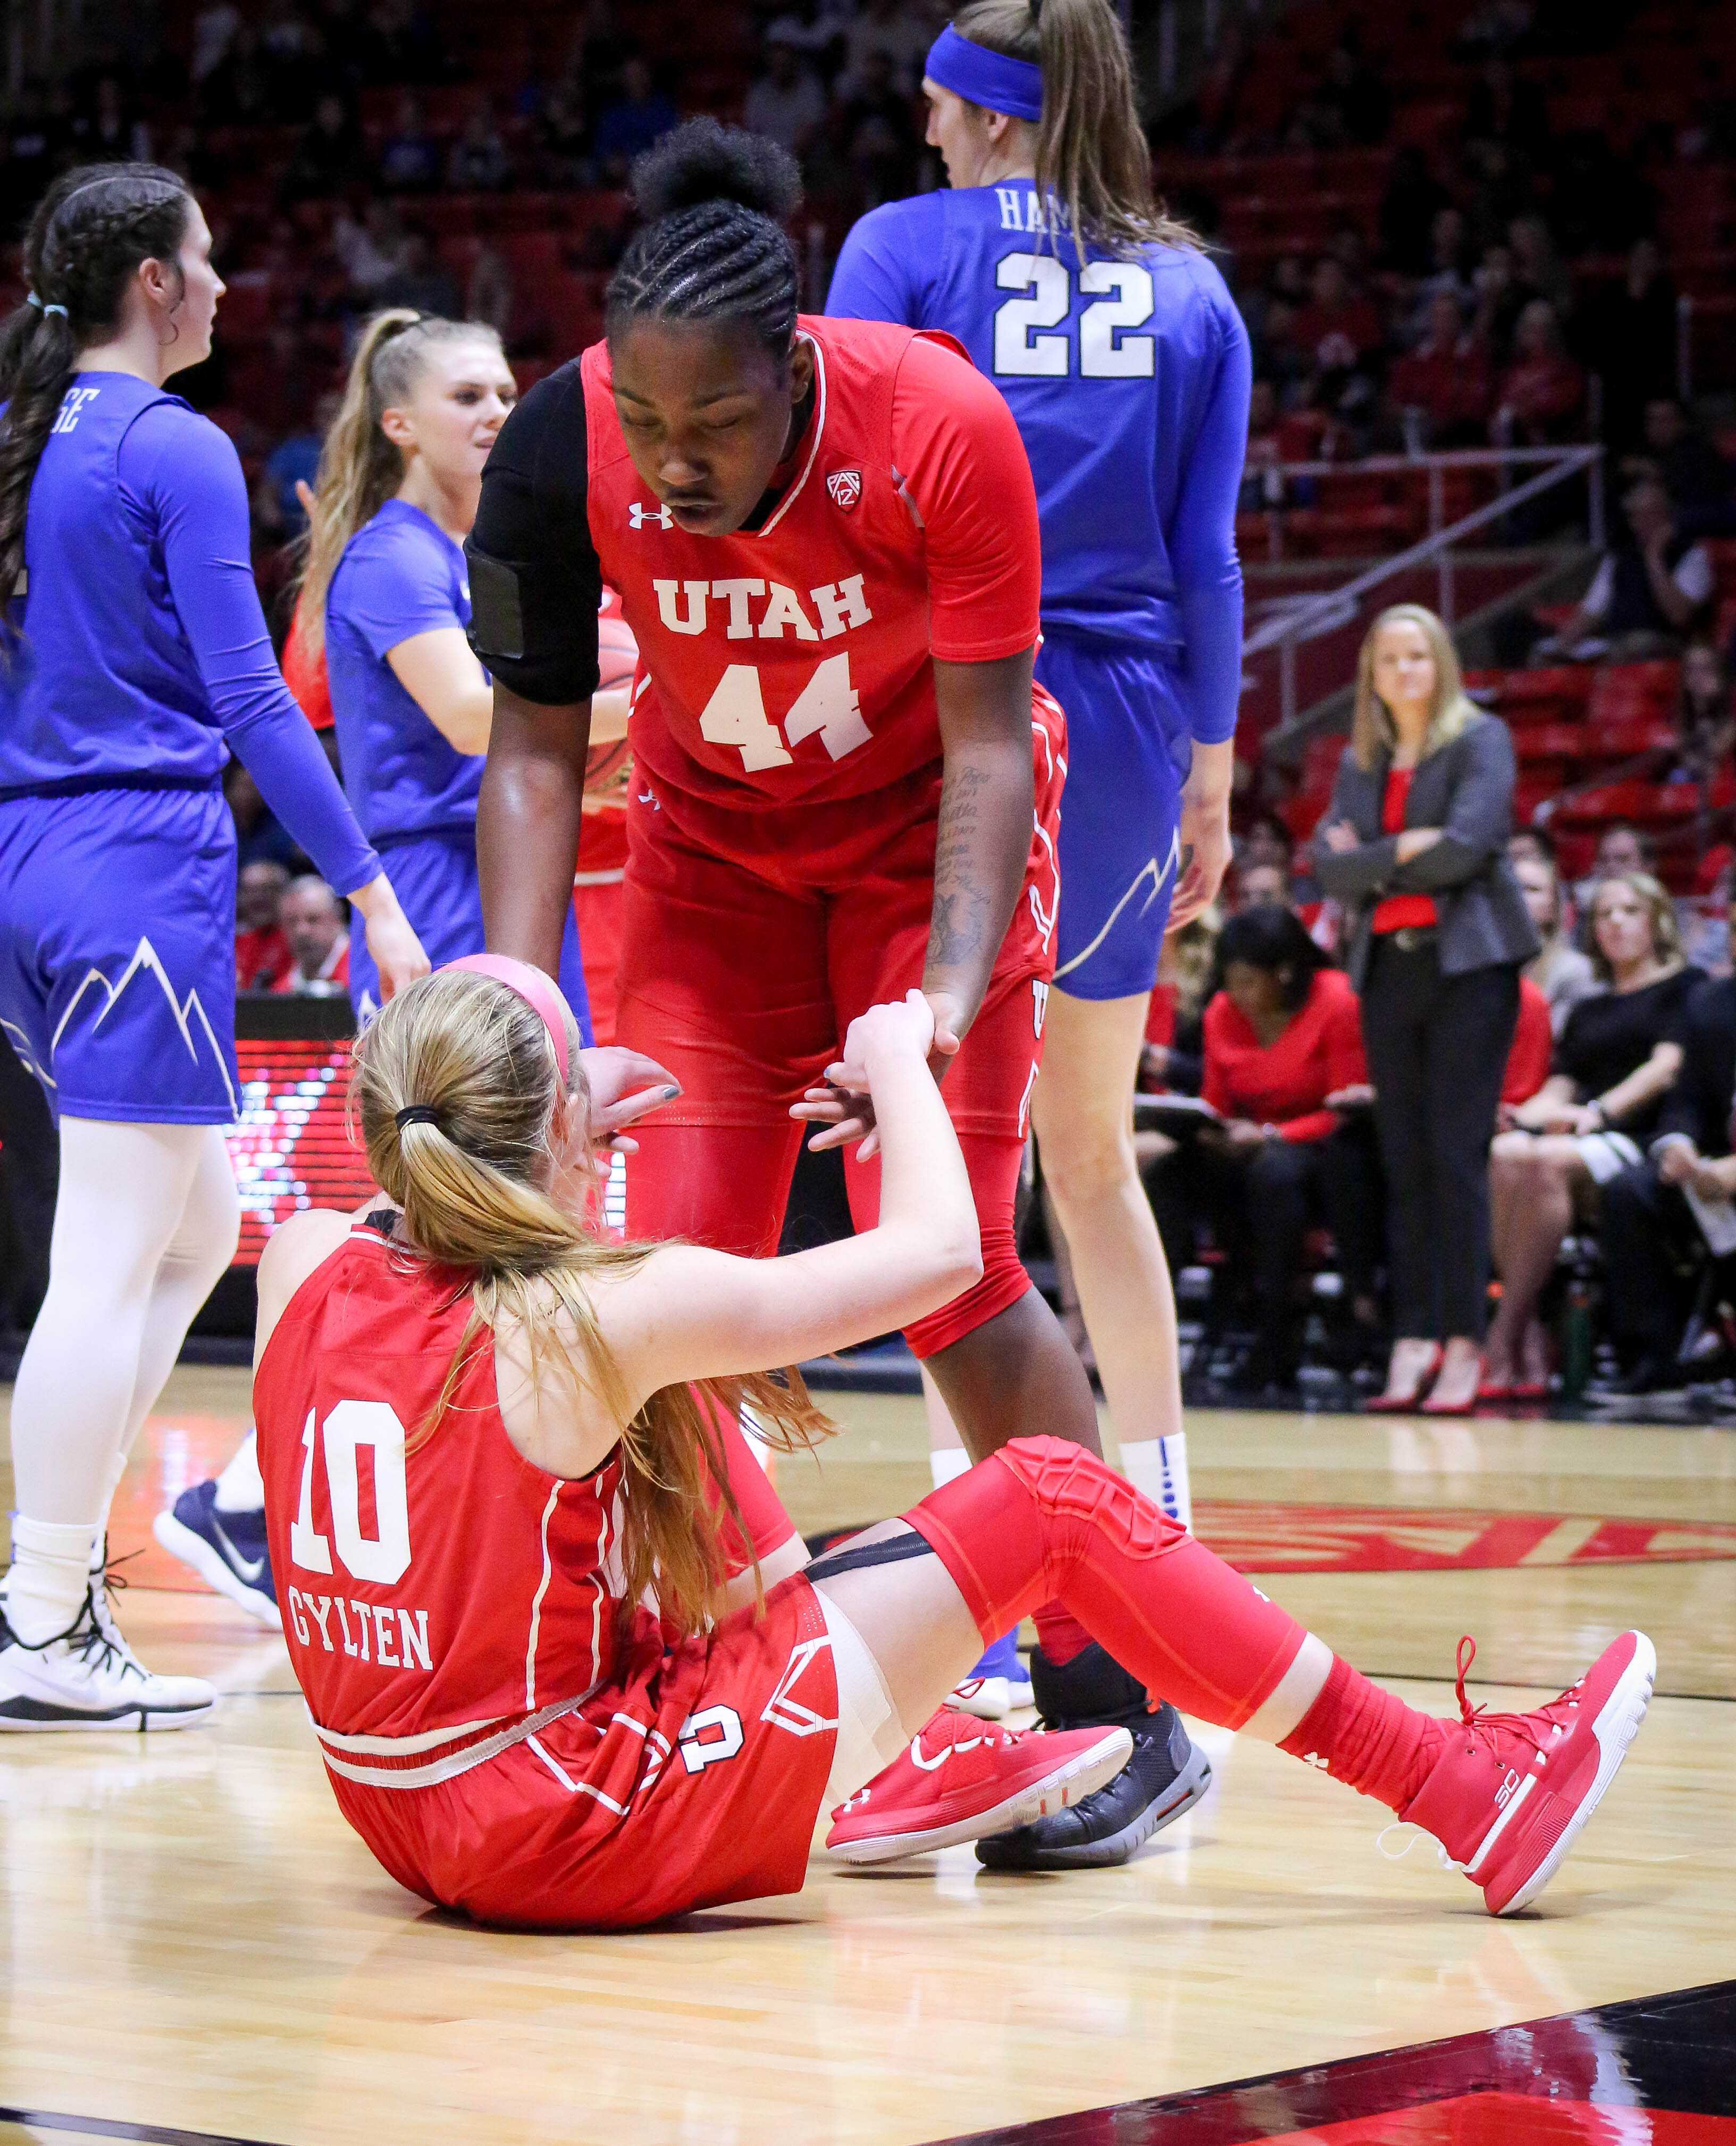 DRE'UNA EDWARDS (44) helps teammate DRU GYLTEN (10) as The University of Utah Lady Utes take on Brigham Young University at the Huntsman Center in Salt Lake City, UT on Saturaday, Dec. 8, 2018 (Photo by Cassandra Palor | Daily Utah Chronicle)